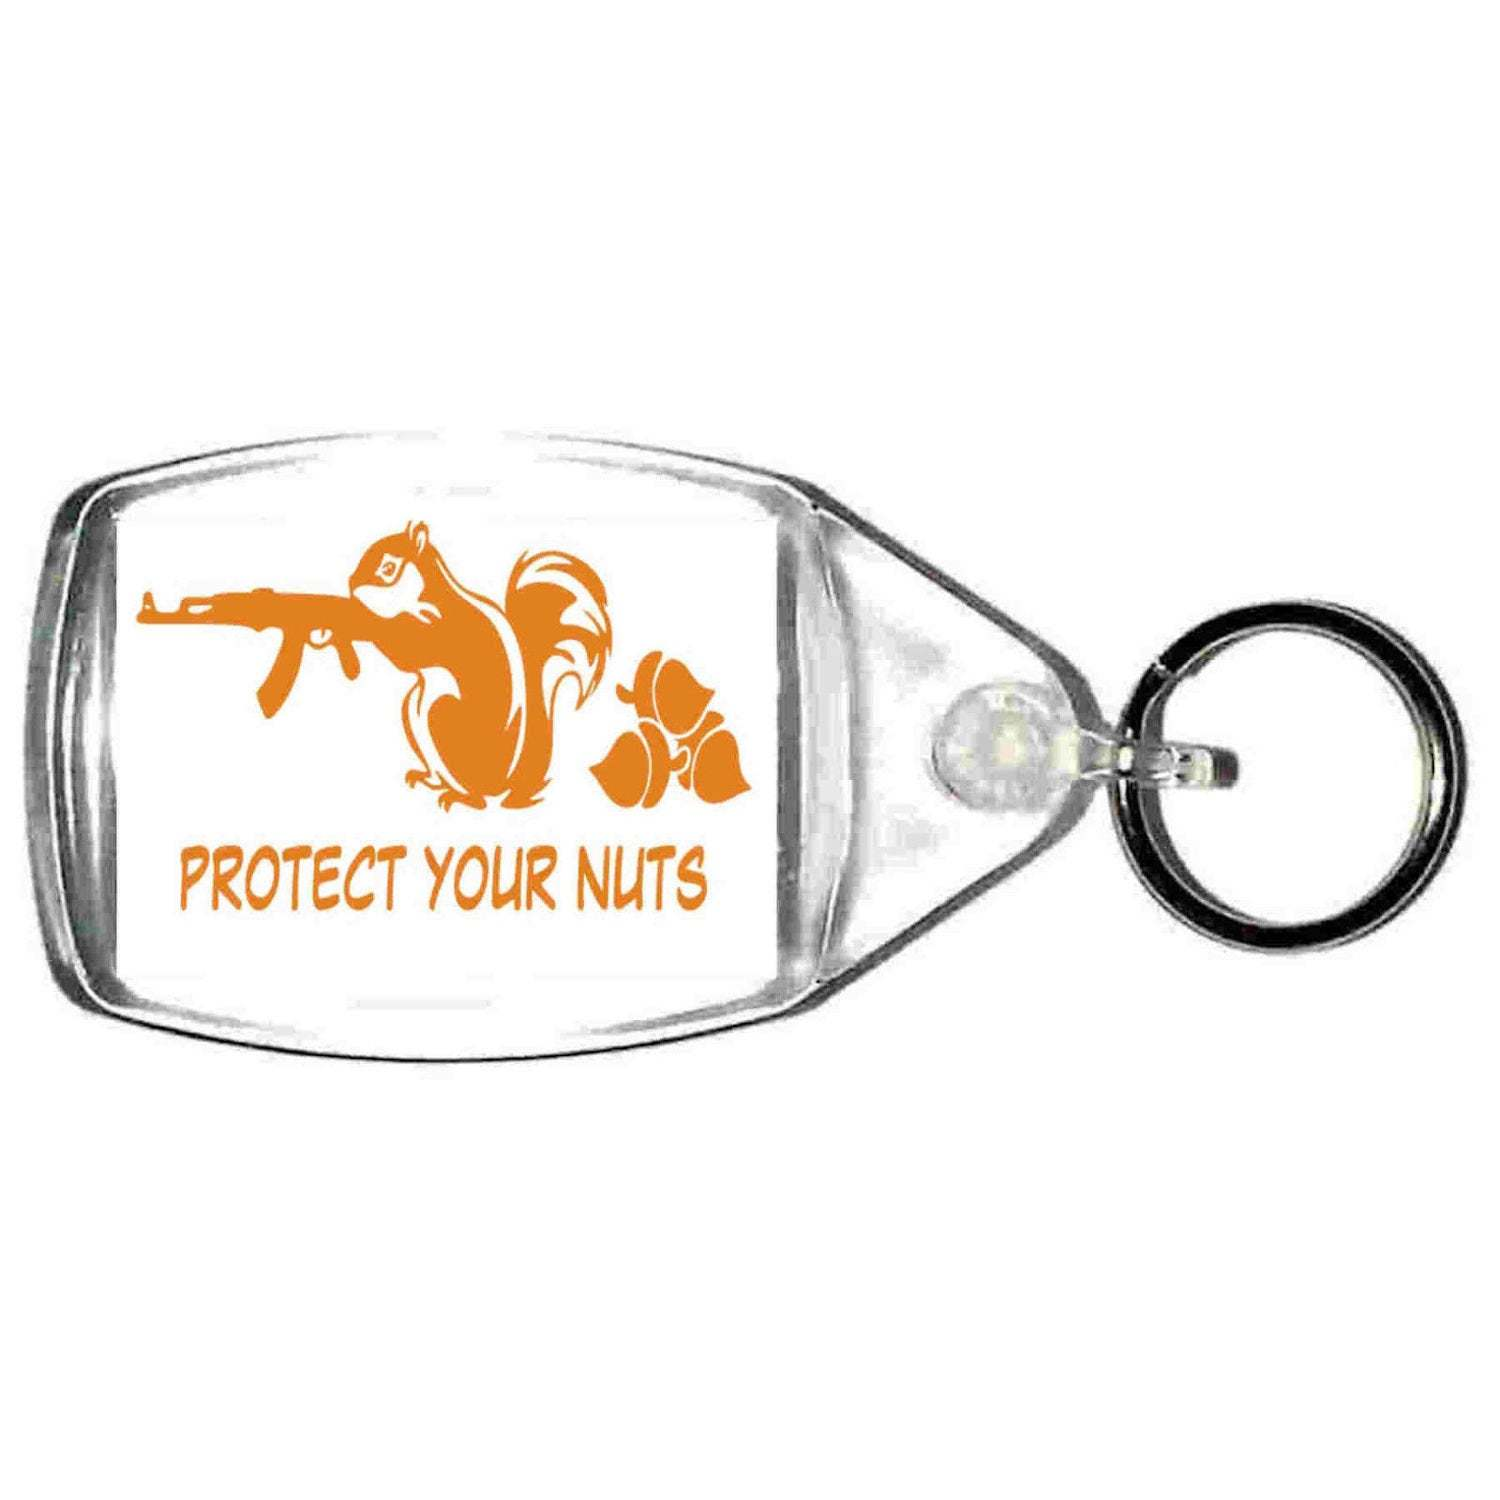 keyring double sided protect your nuts fun, novelty, keychain